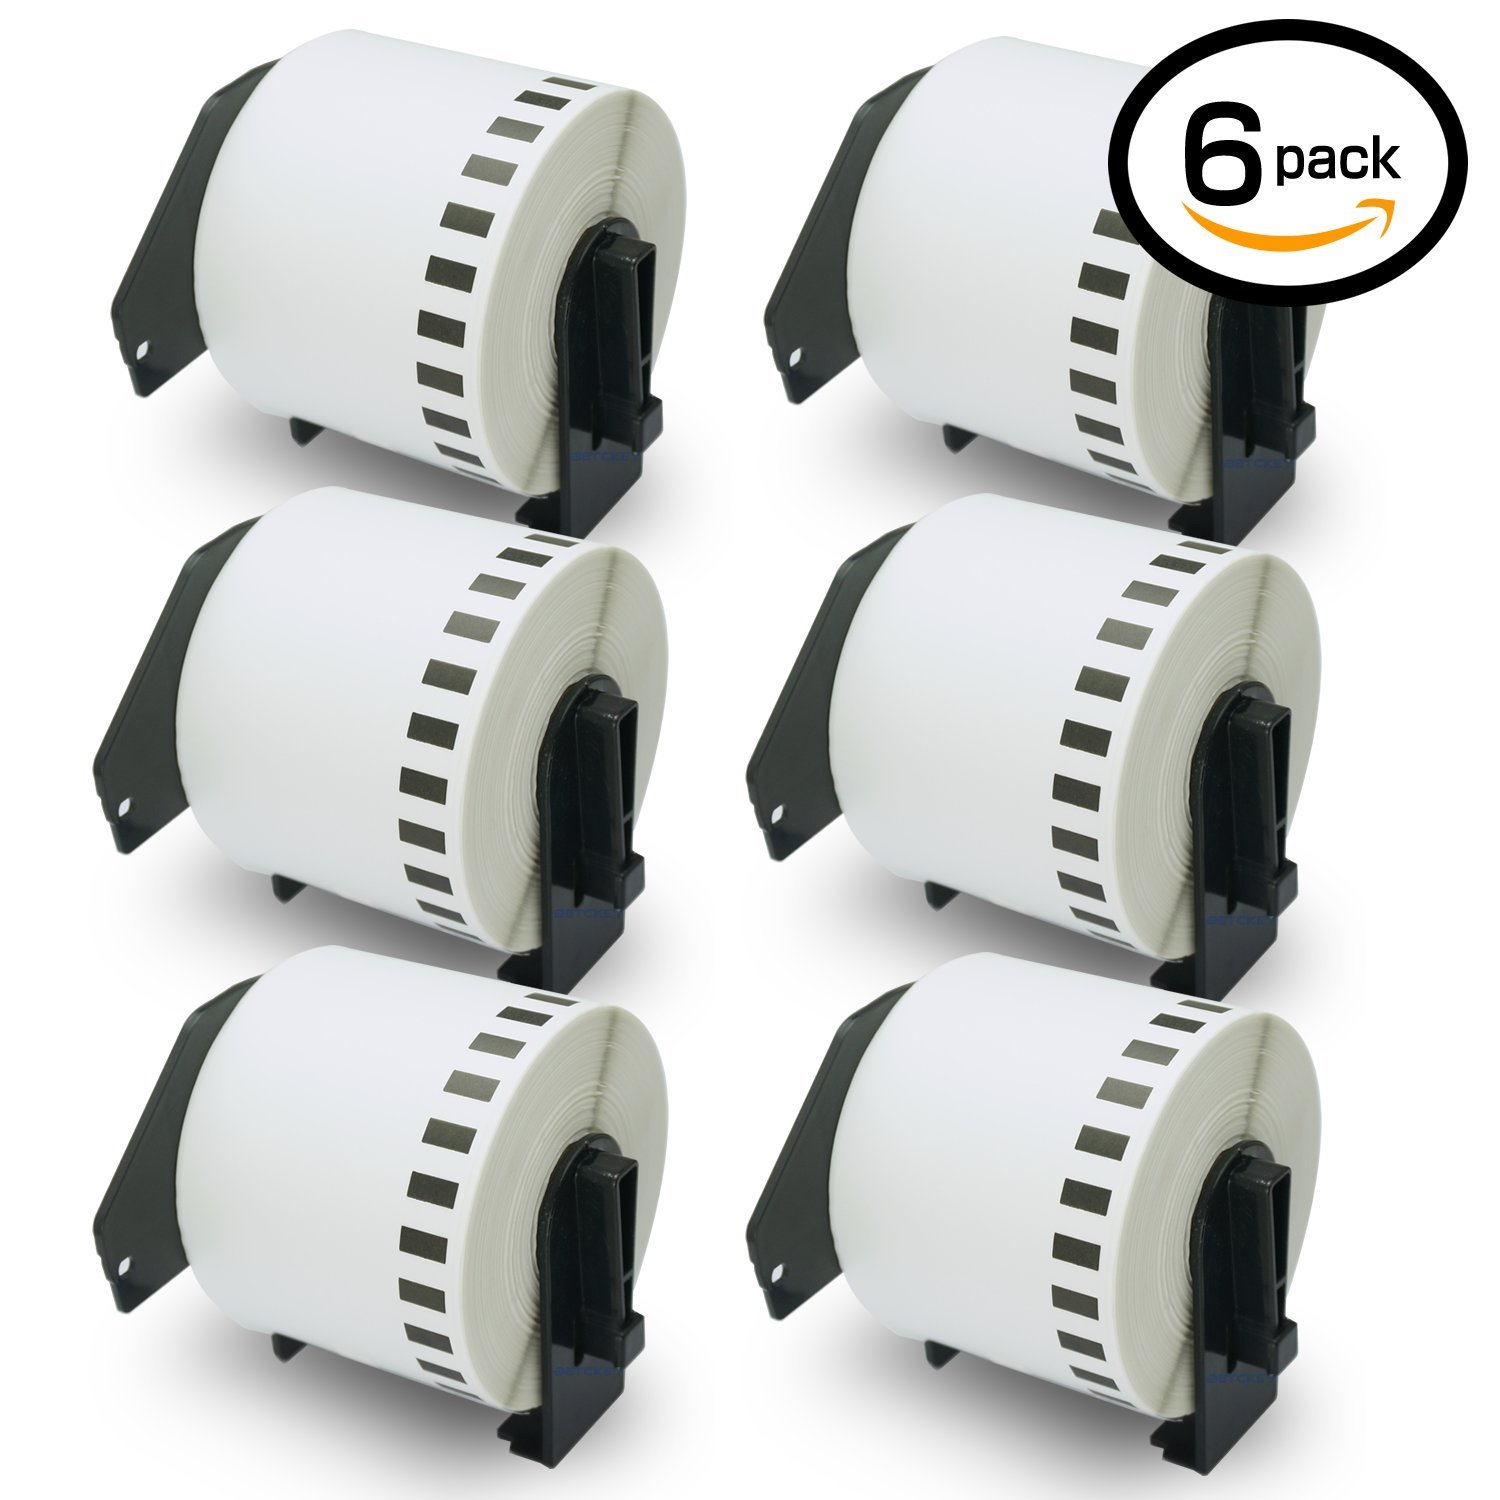 6 Rolls Brother-Compatible DK-4205 Removable Continuous Labels Black on White 62mm x 30.48M(2-3/7'' x 100') With Refillable Cartridge